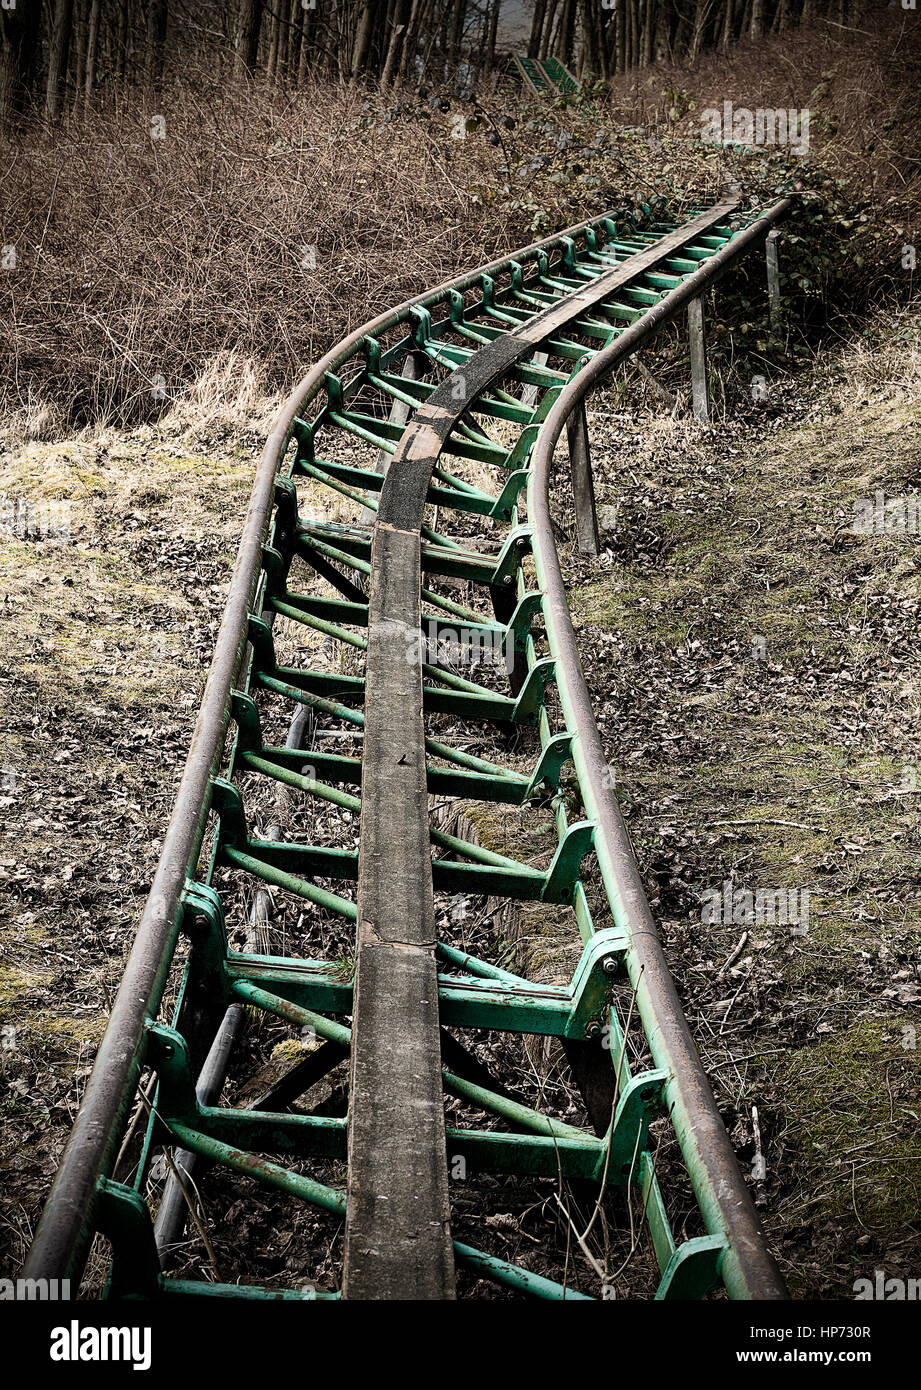 Abandoned Theme Park Ride Stock Photo Alamy